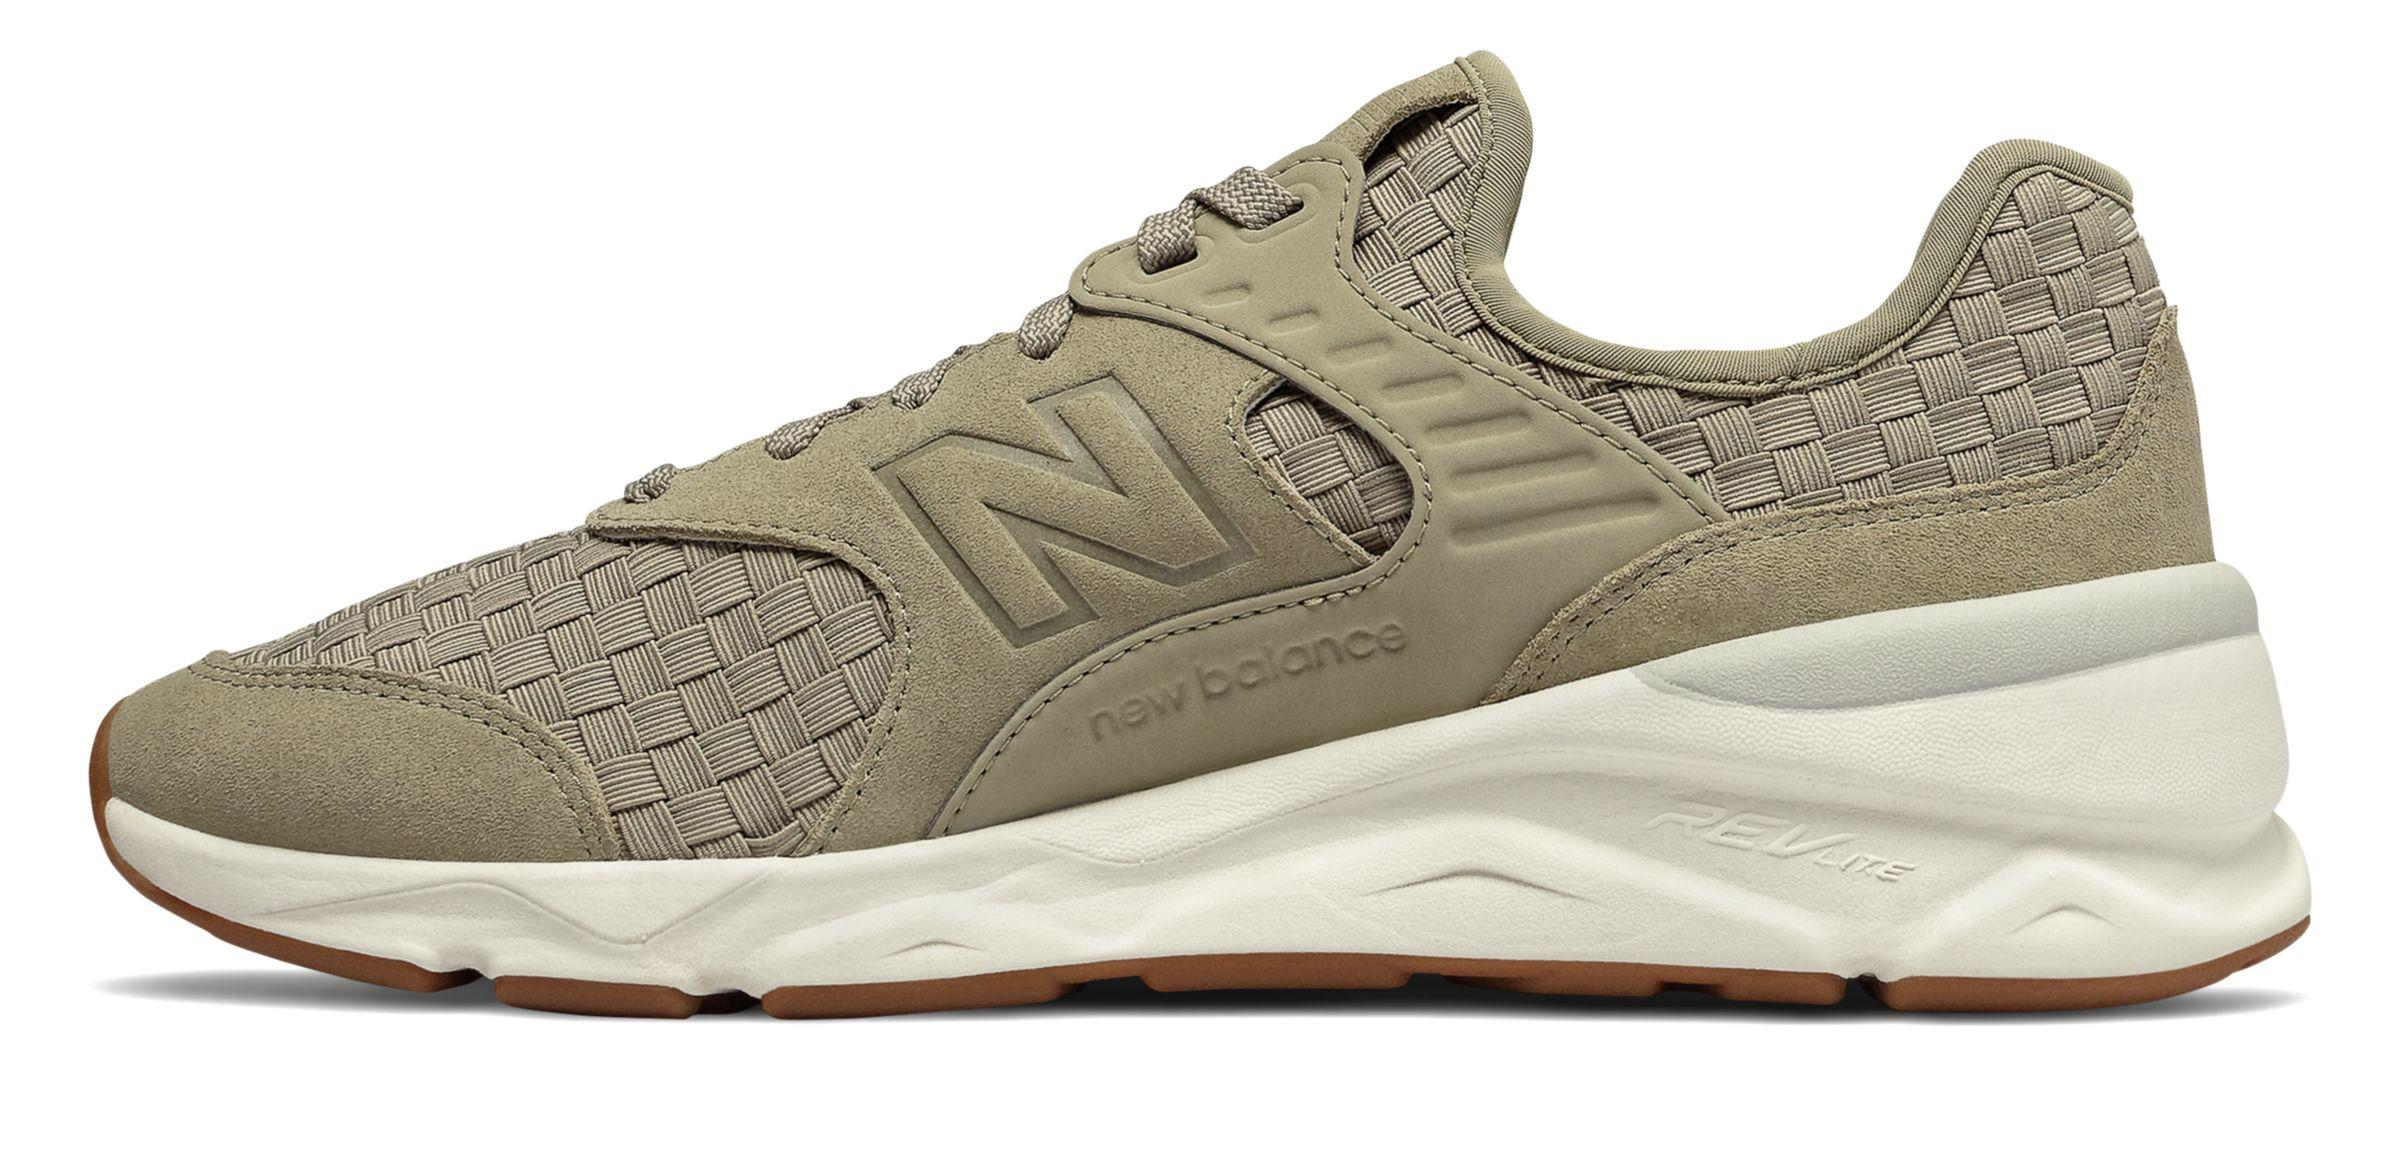 New Balance Suede X-90 for Men - Lyst